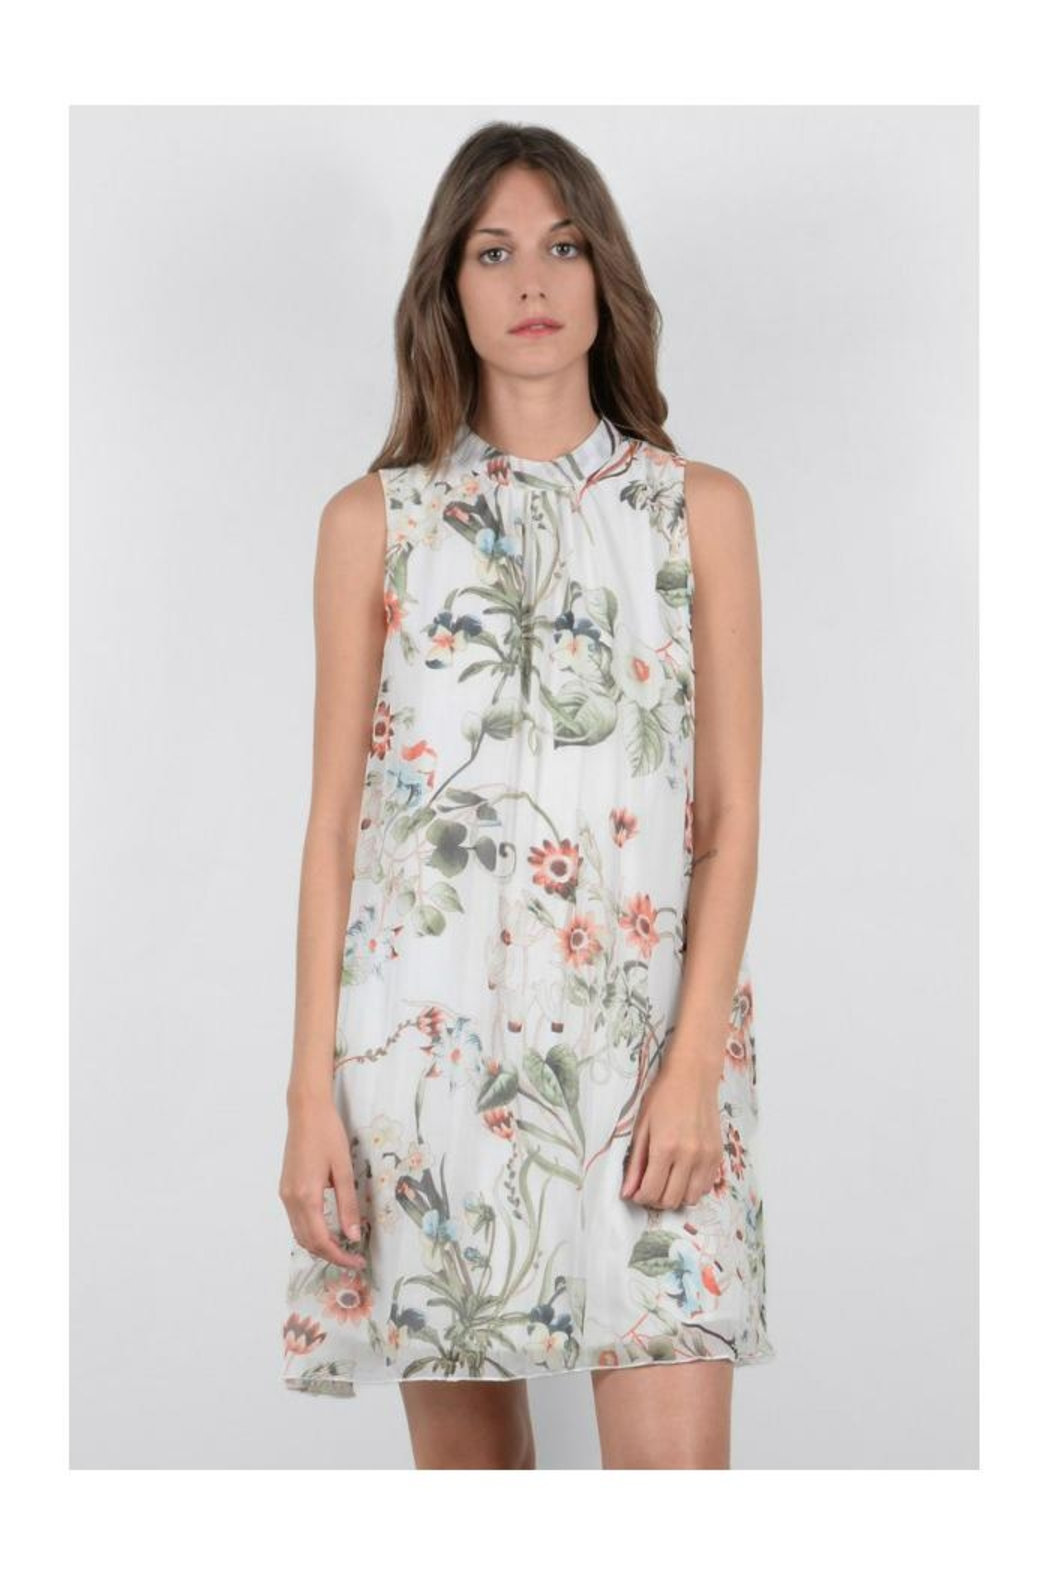 Molly Bracken Floral Sleeveless Dress - Main Image